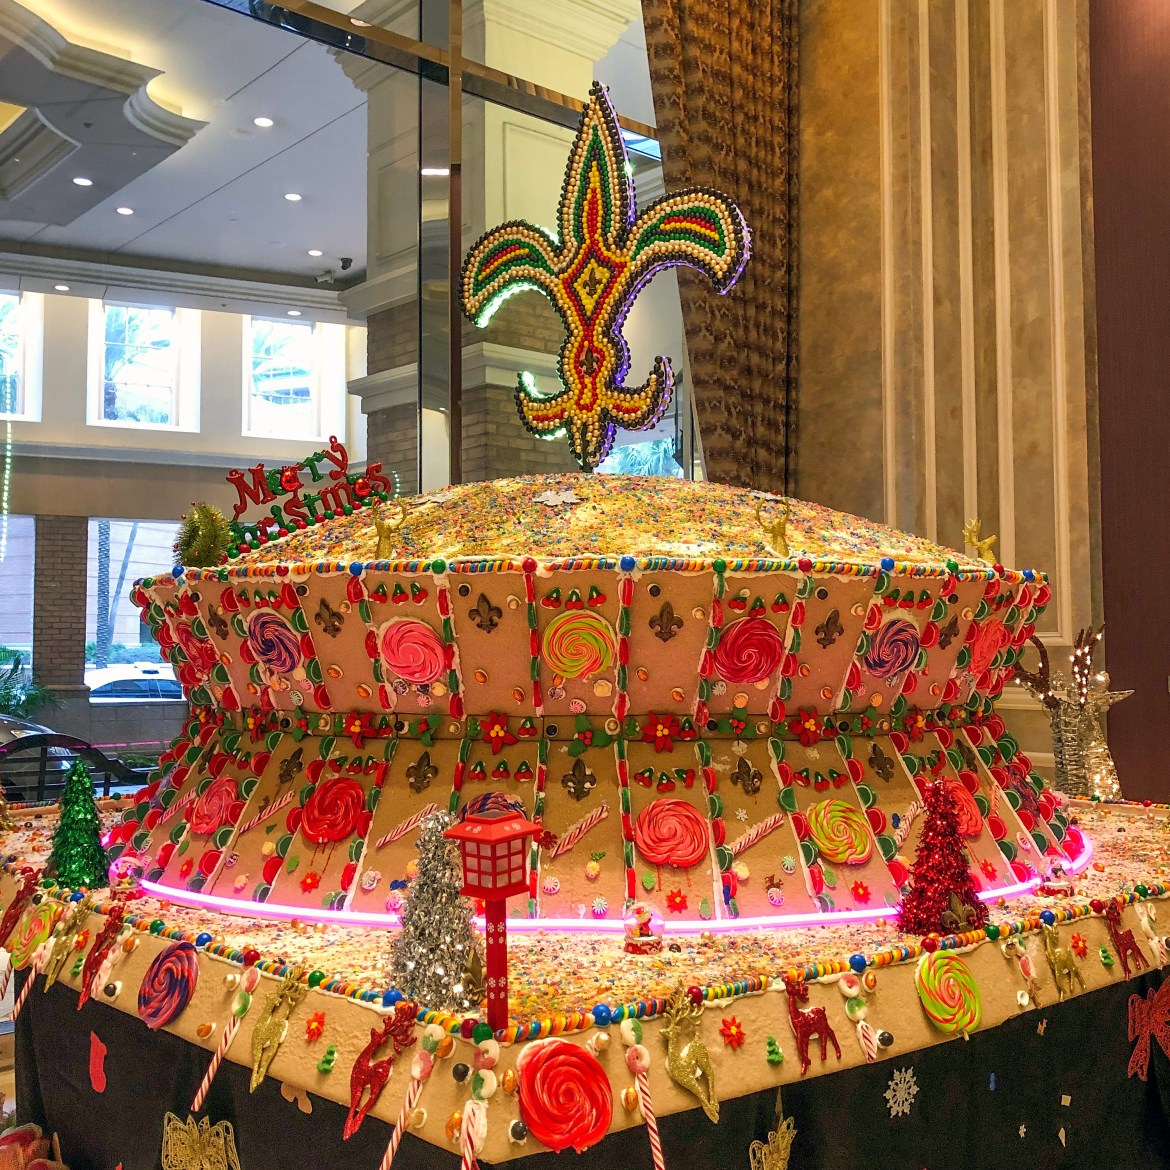 Sheraton Hotel Gingerbread Superdome New Orleans Louisiana